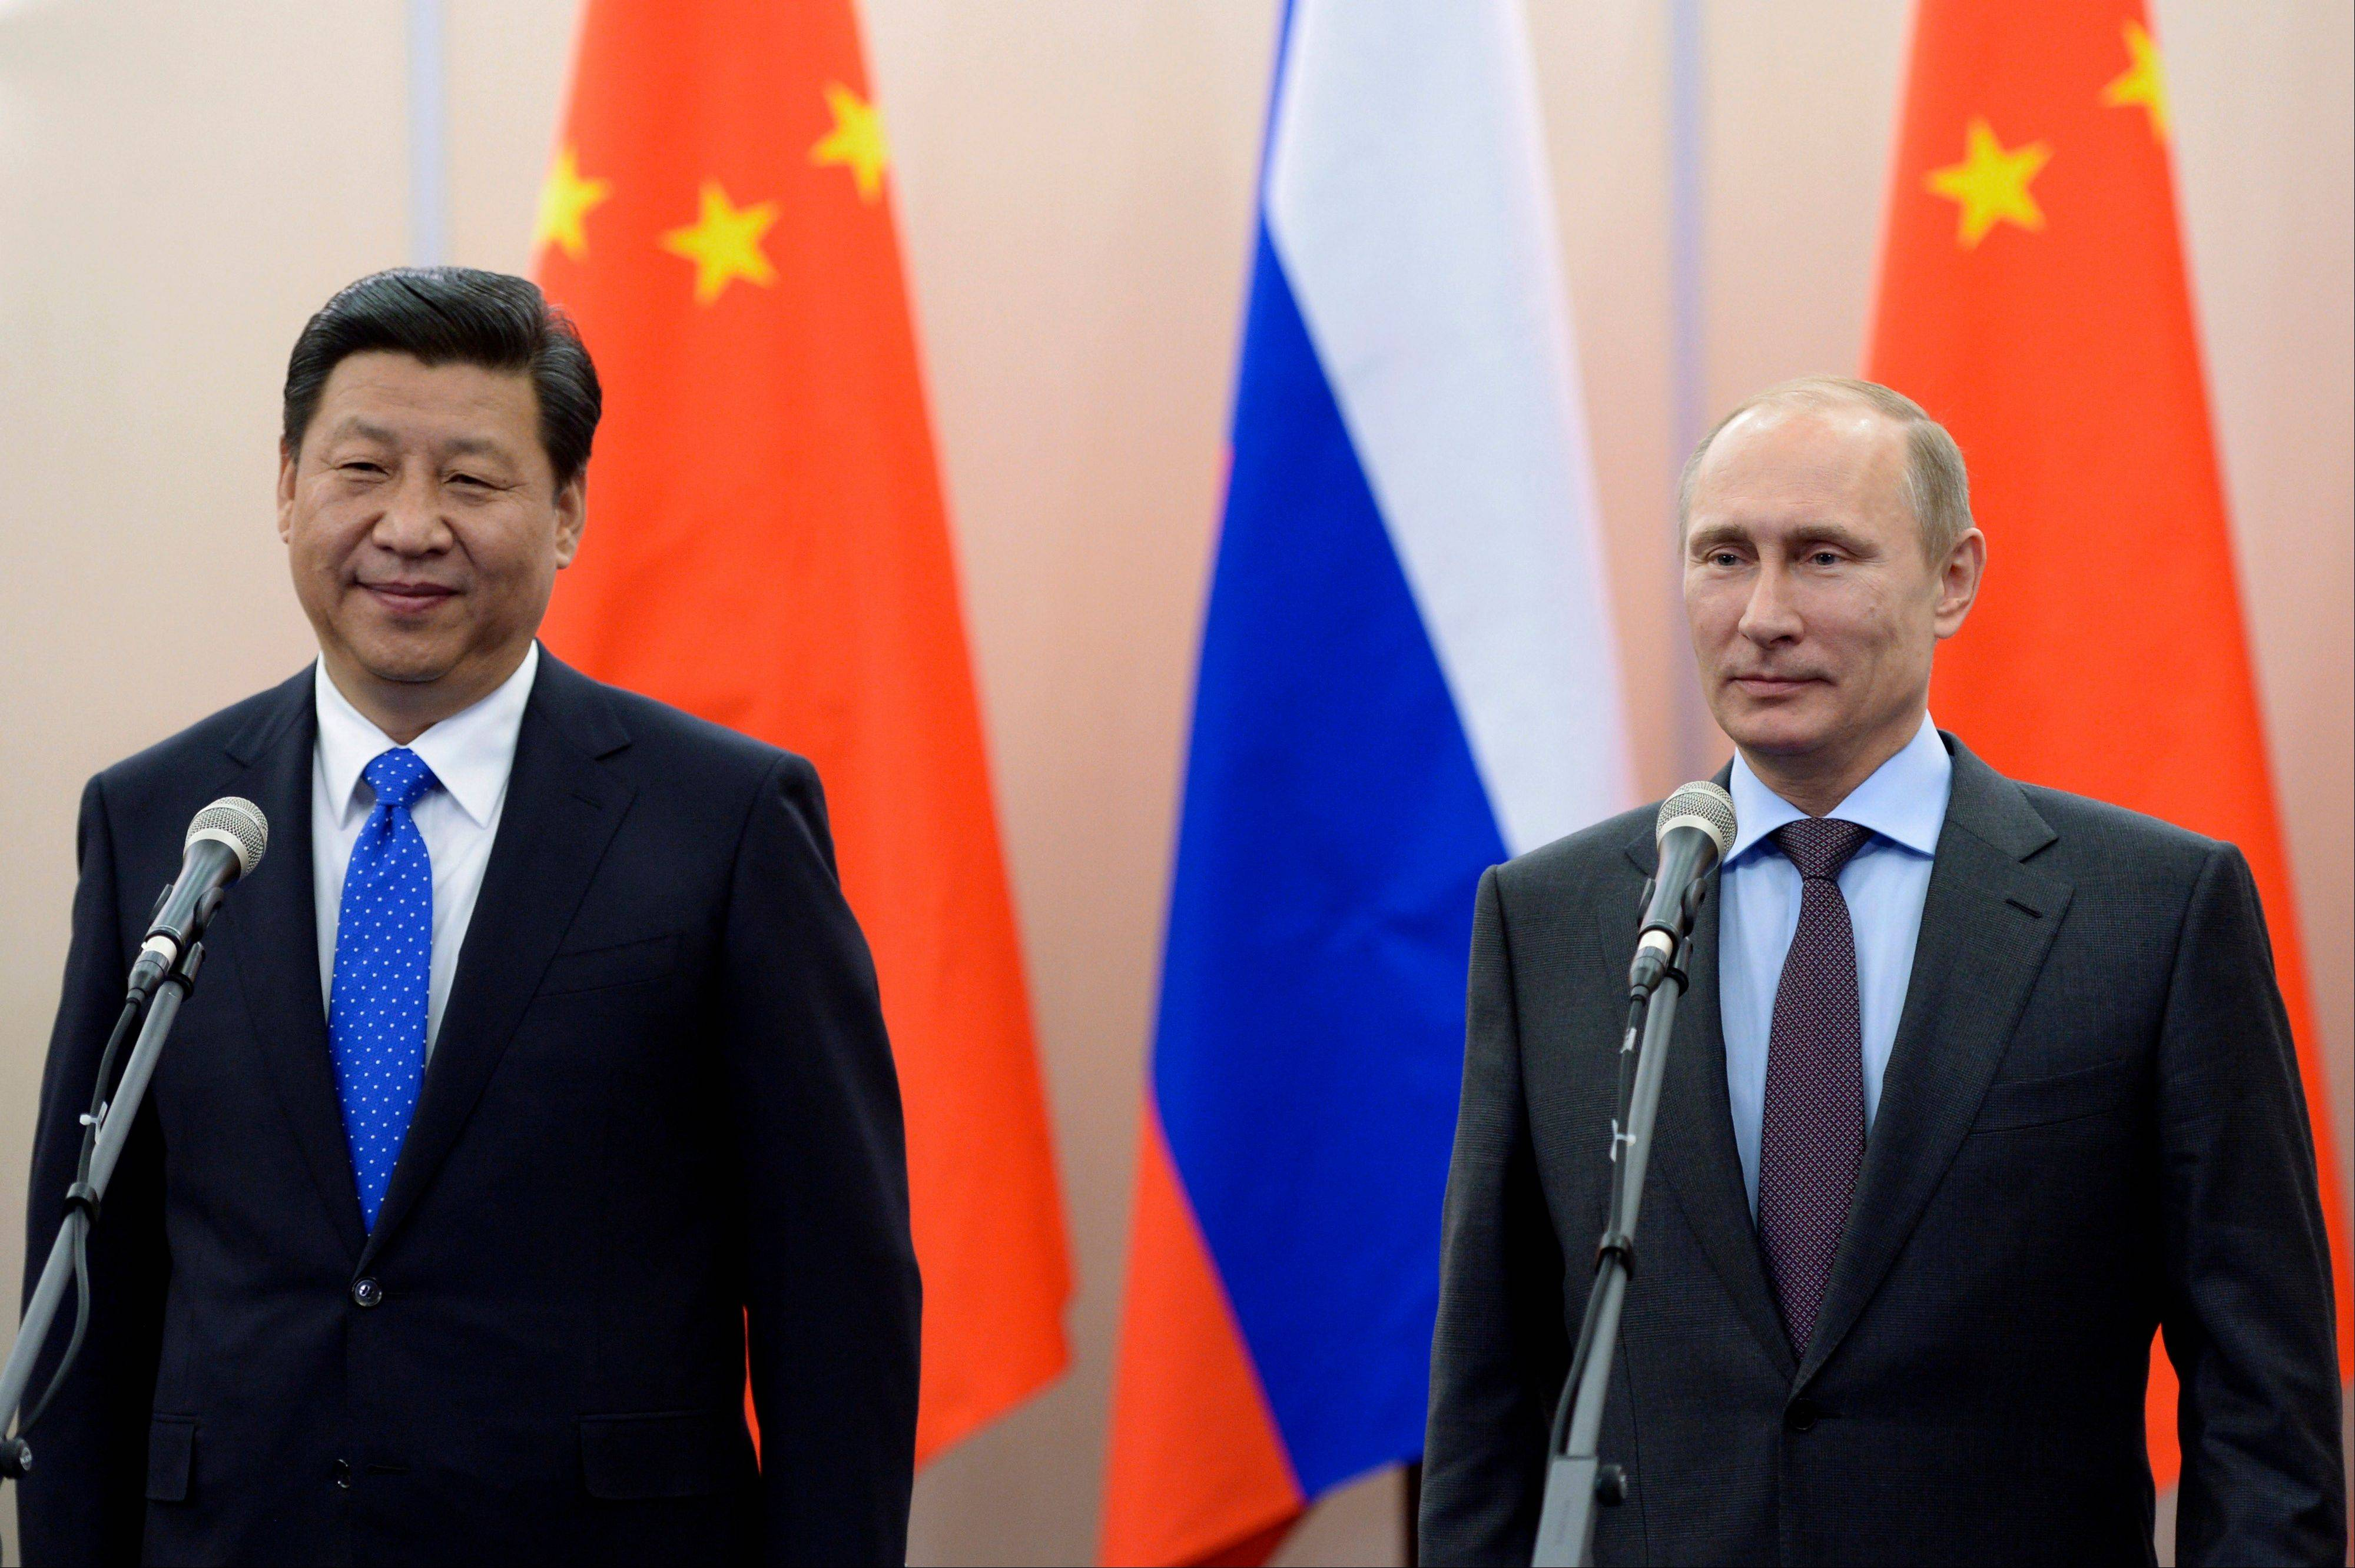 Russian President Vladimir Putin, right, and Chinese President Xi Jinping. Japanese Prime Minister Shinzo Abe and his Chinese counterpart Xi -- the leaders of the world's second and third largest economies -- are going to Sochi.